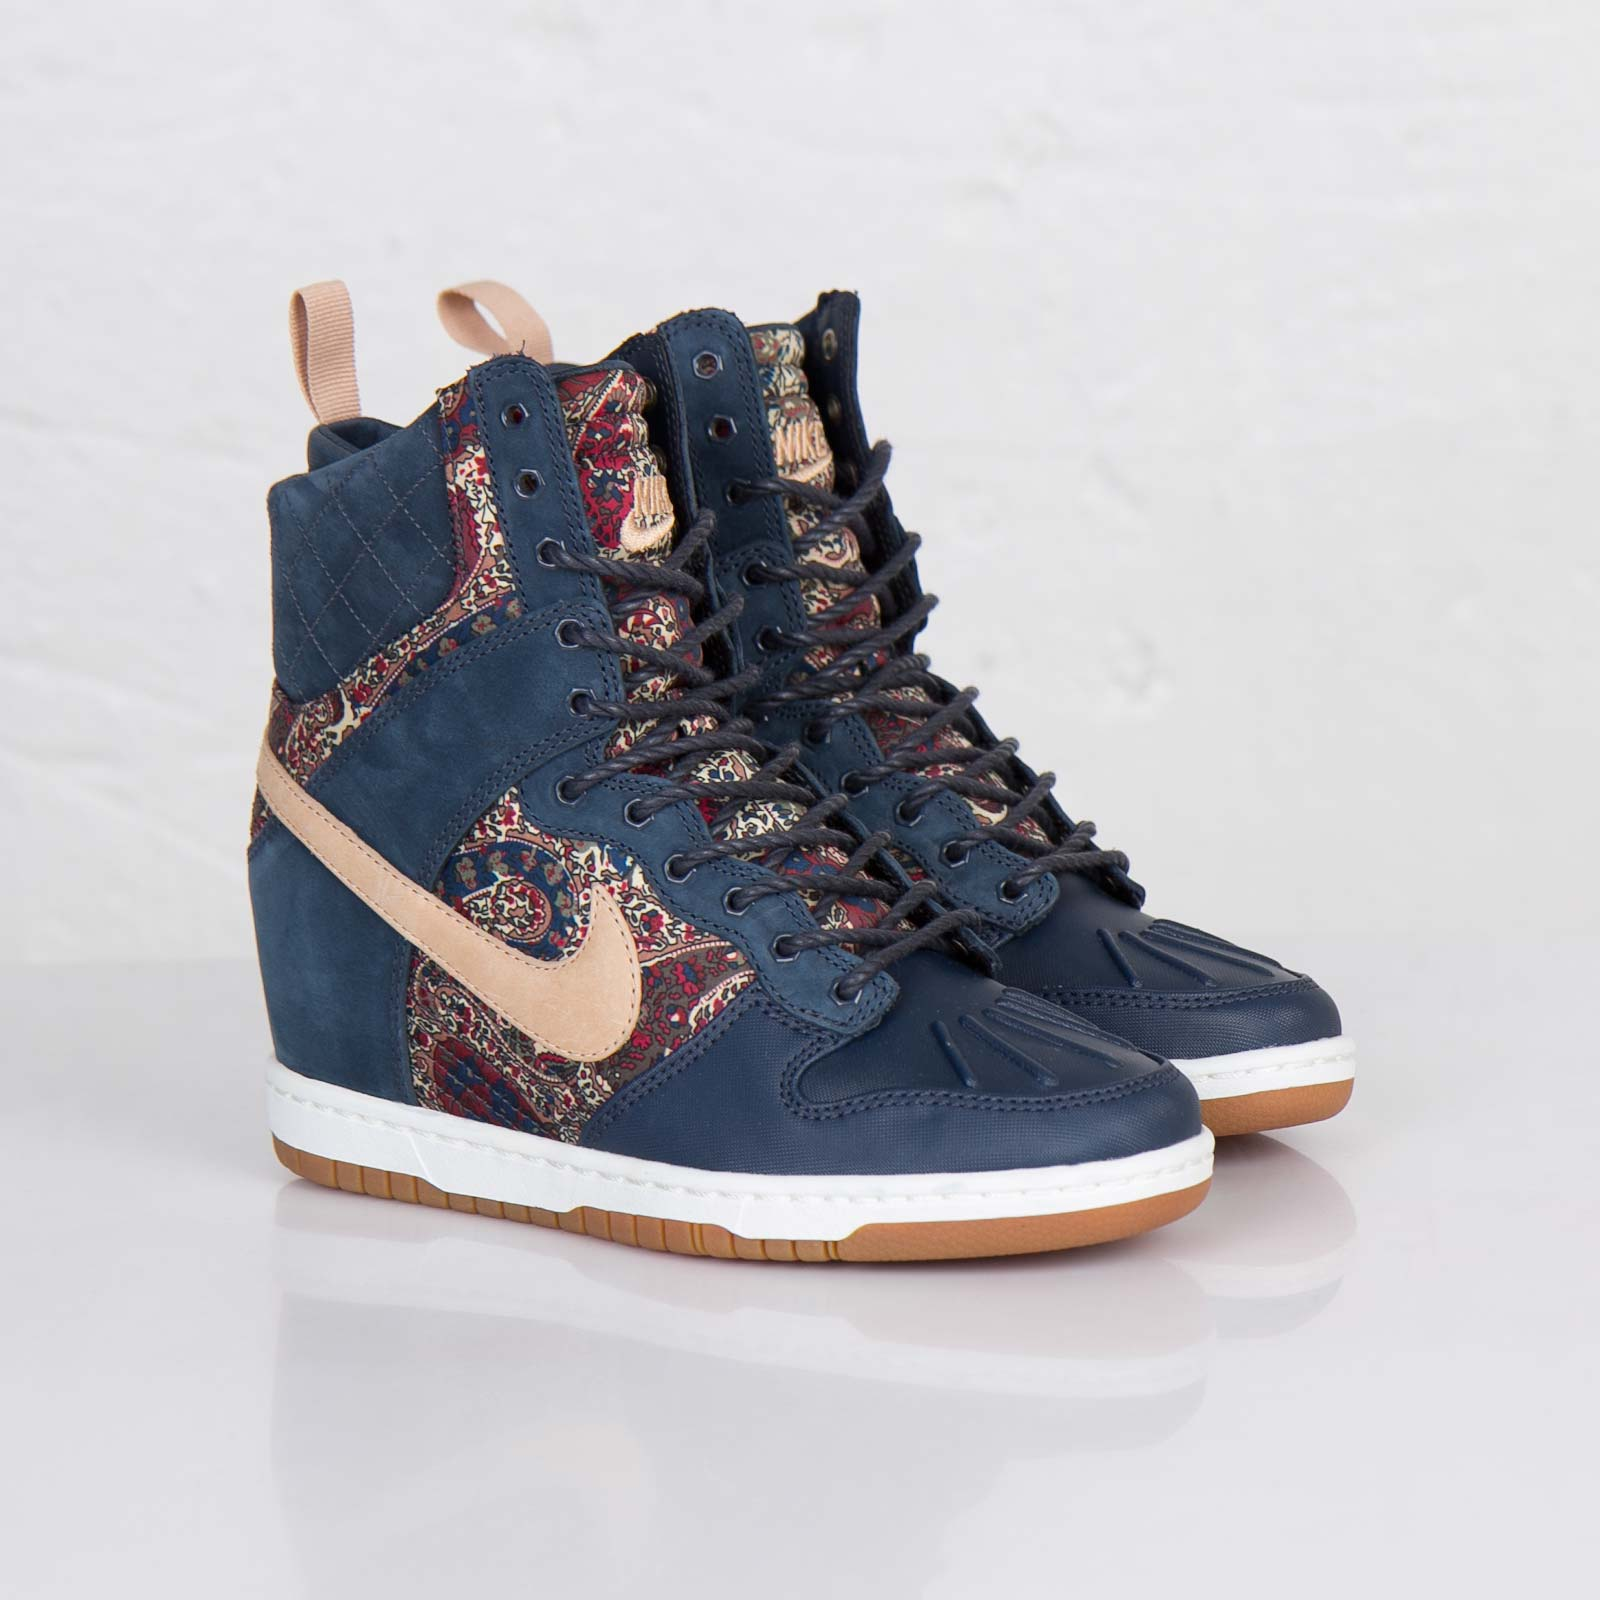 best authentic d5f98 9e7a7 Nike Wmns Dunk Sky Hi Sneakerboot Liberty QS